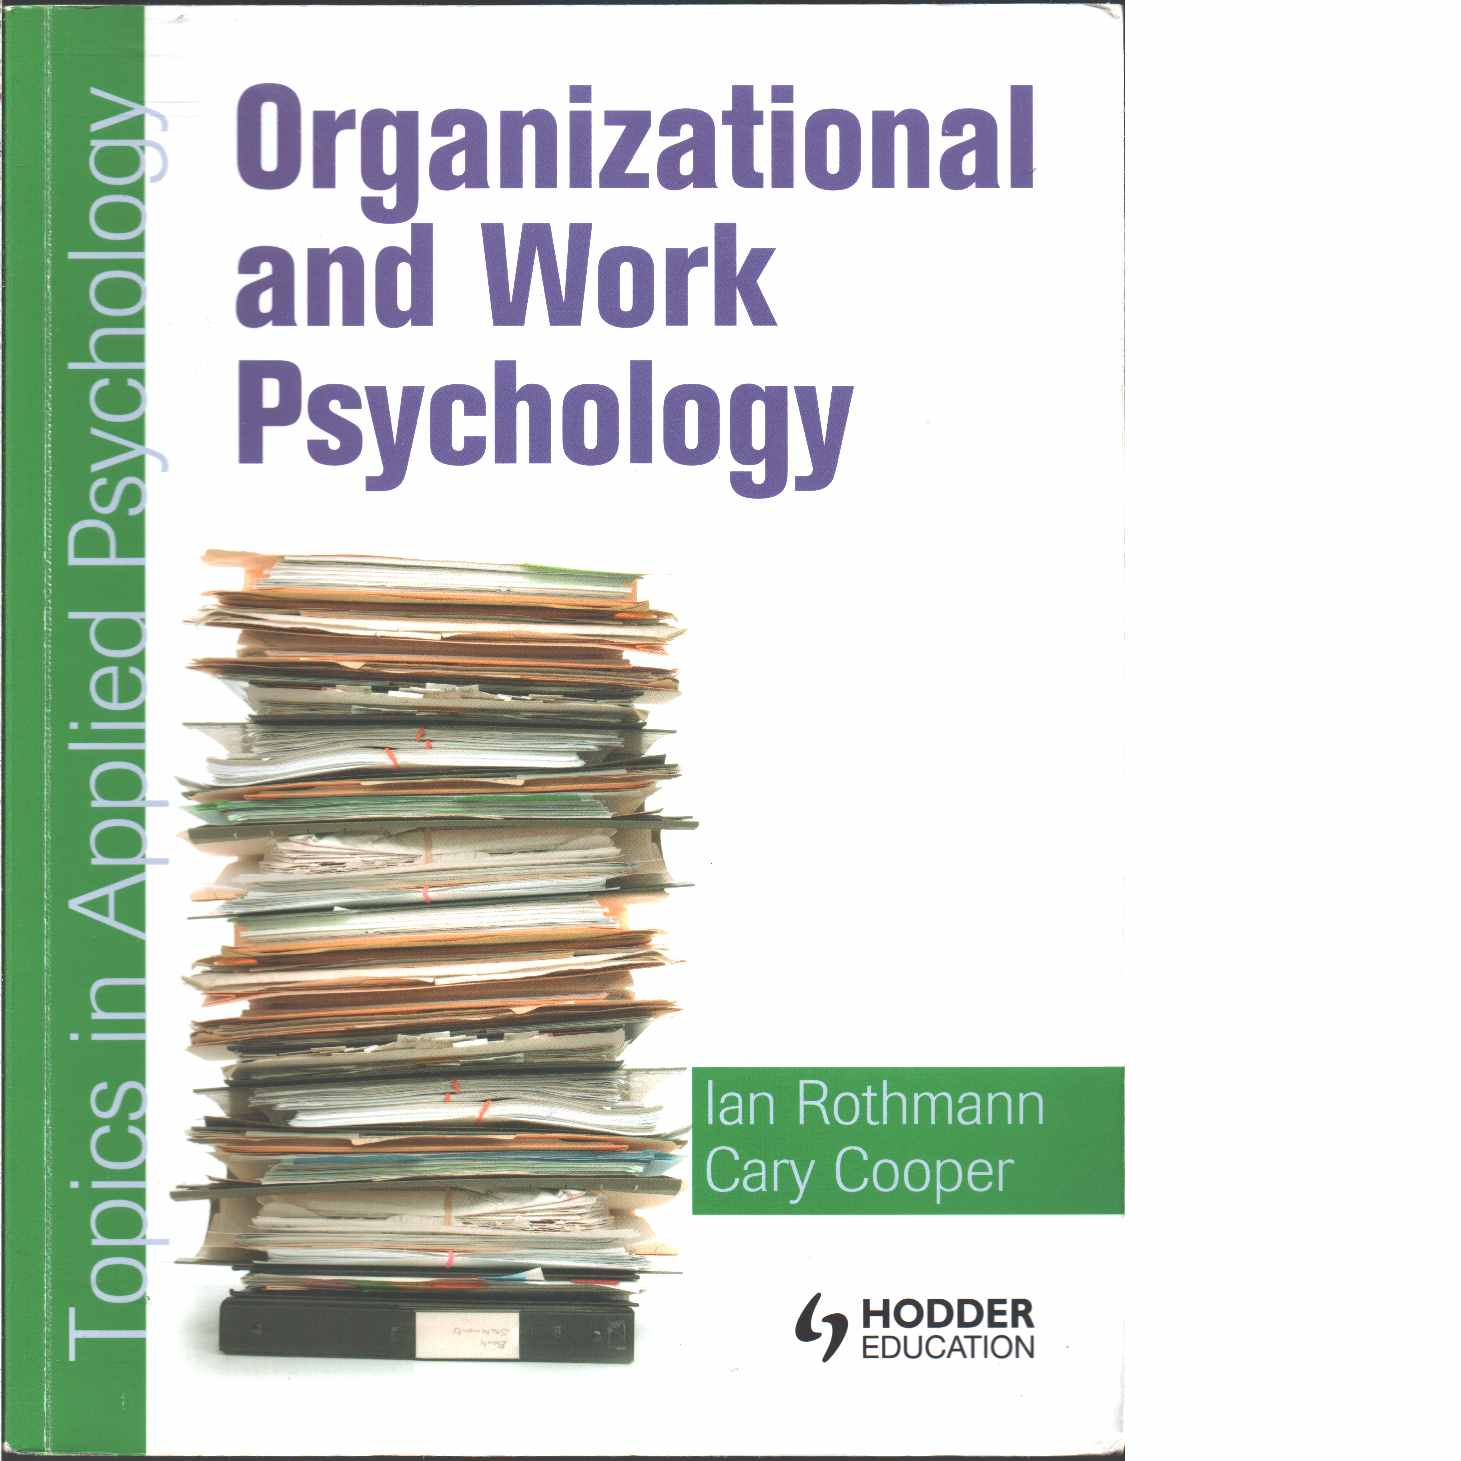 Organizational and work psychology : topics in applied psychology  - Rothmann, S. and Cooper, Cary L.